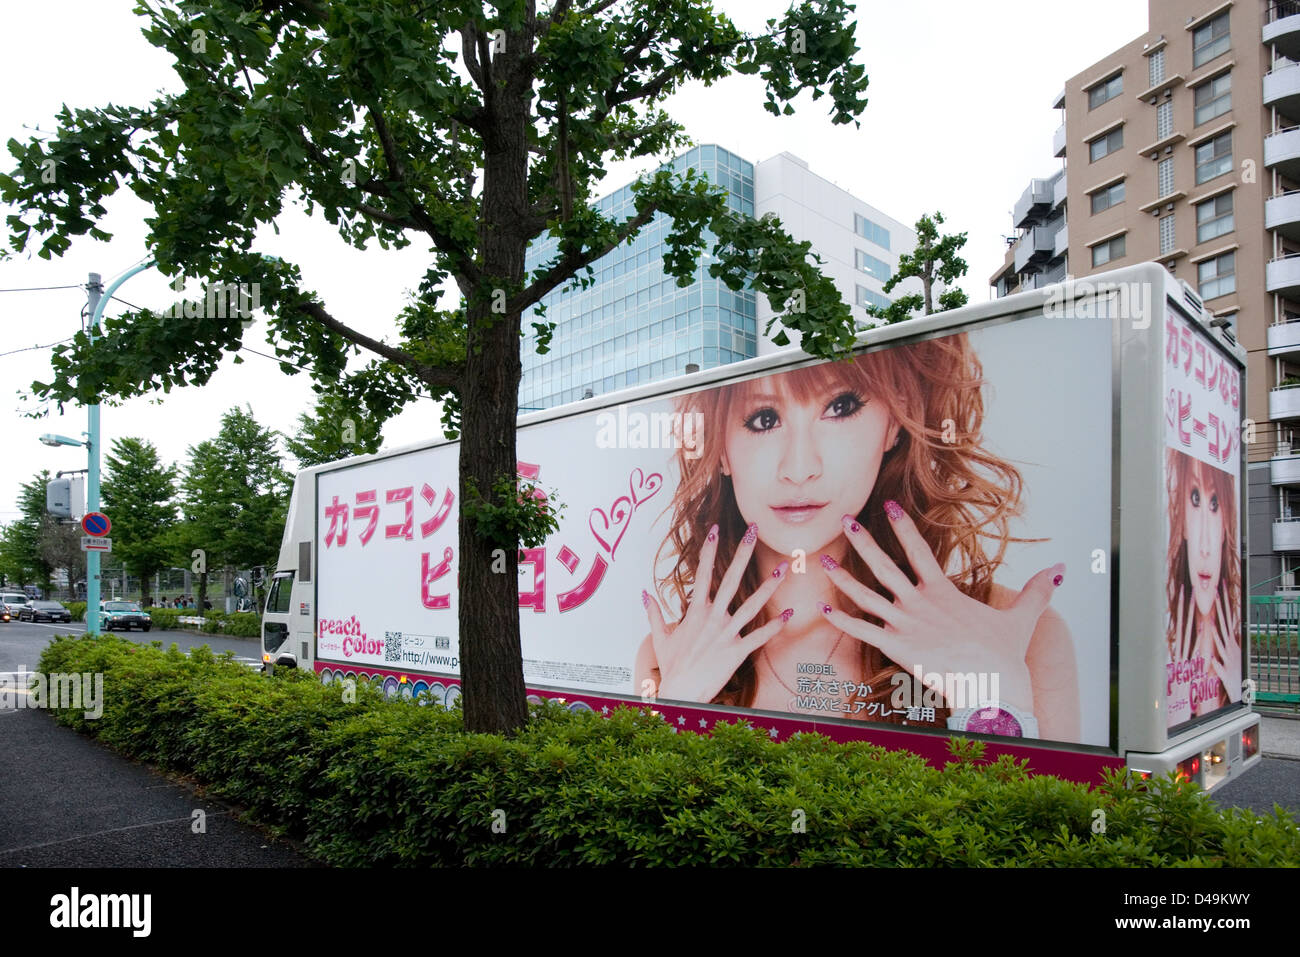 A large billboard sign truck advertising young girl's fashion passing by on the street of Shibuya, Tokyo. - Stock Image